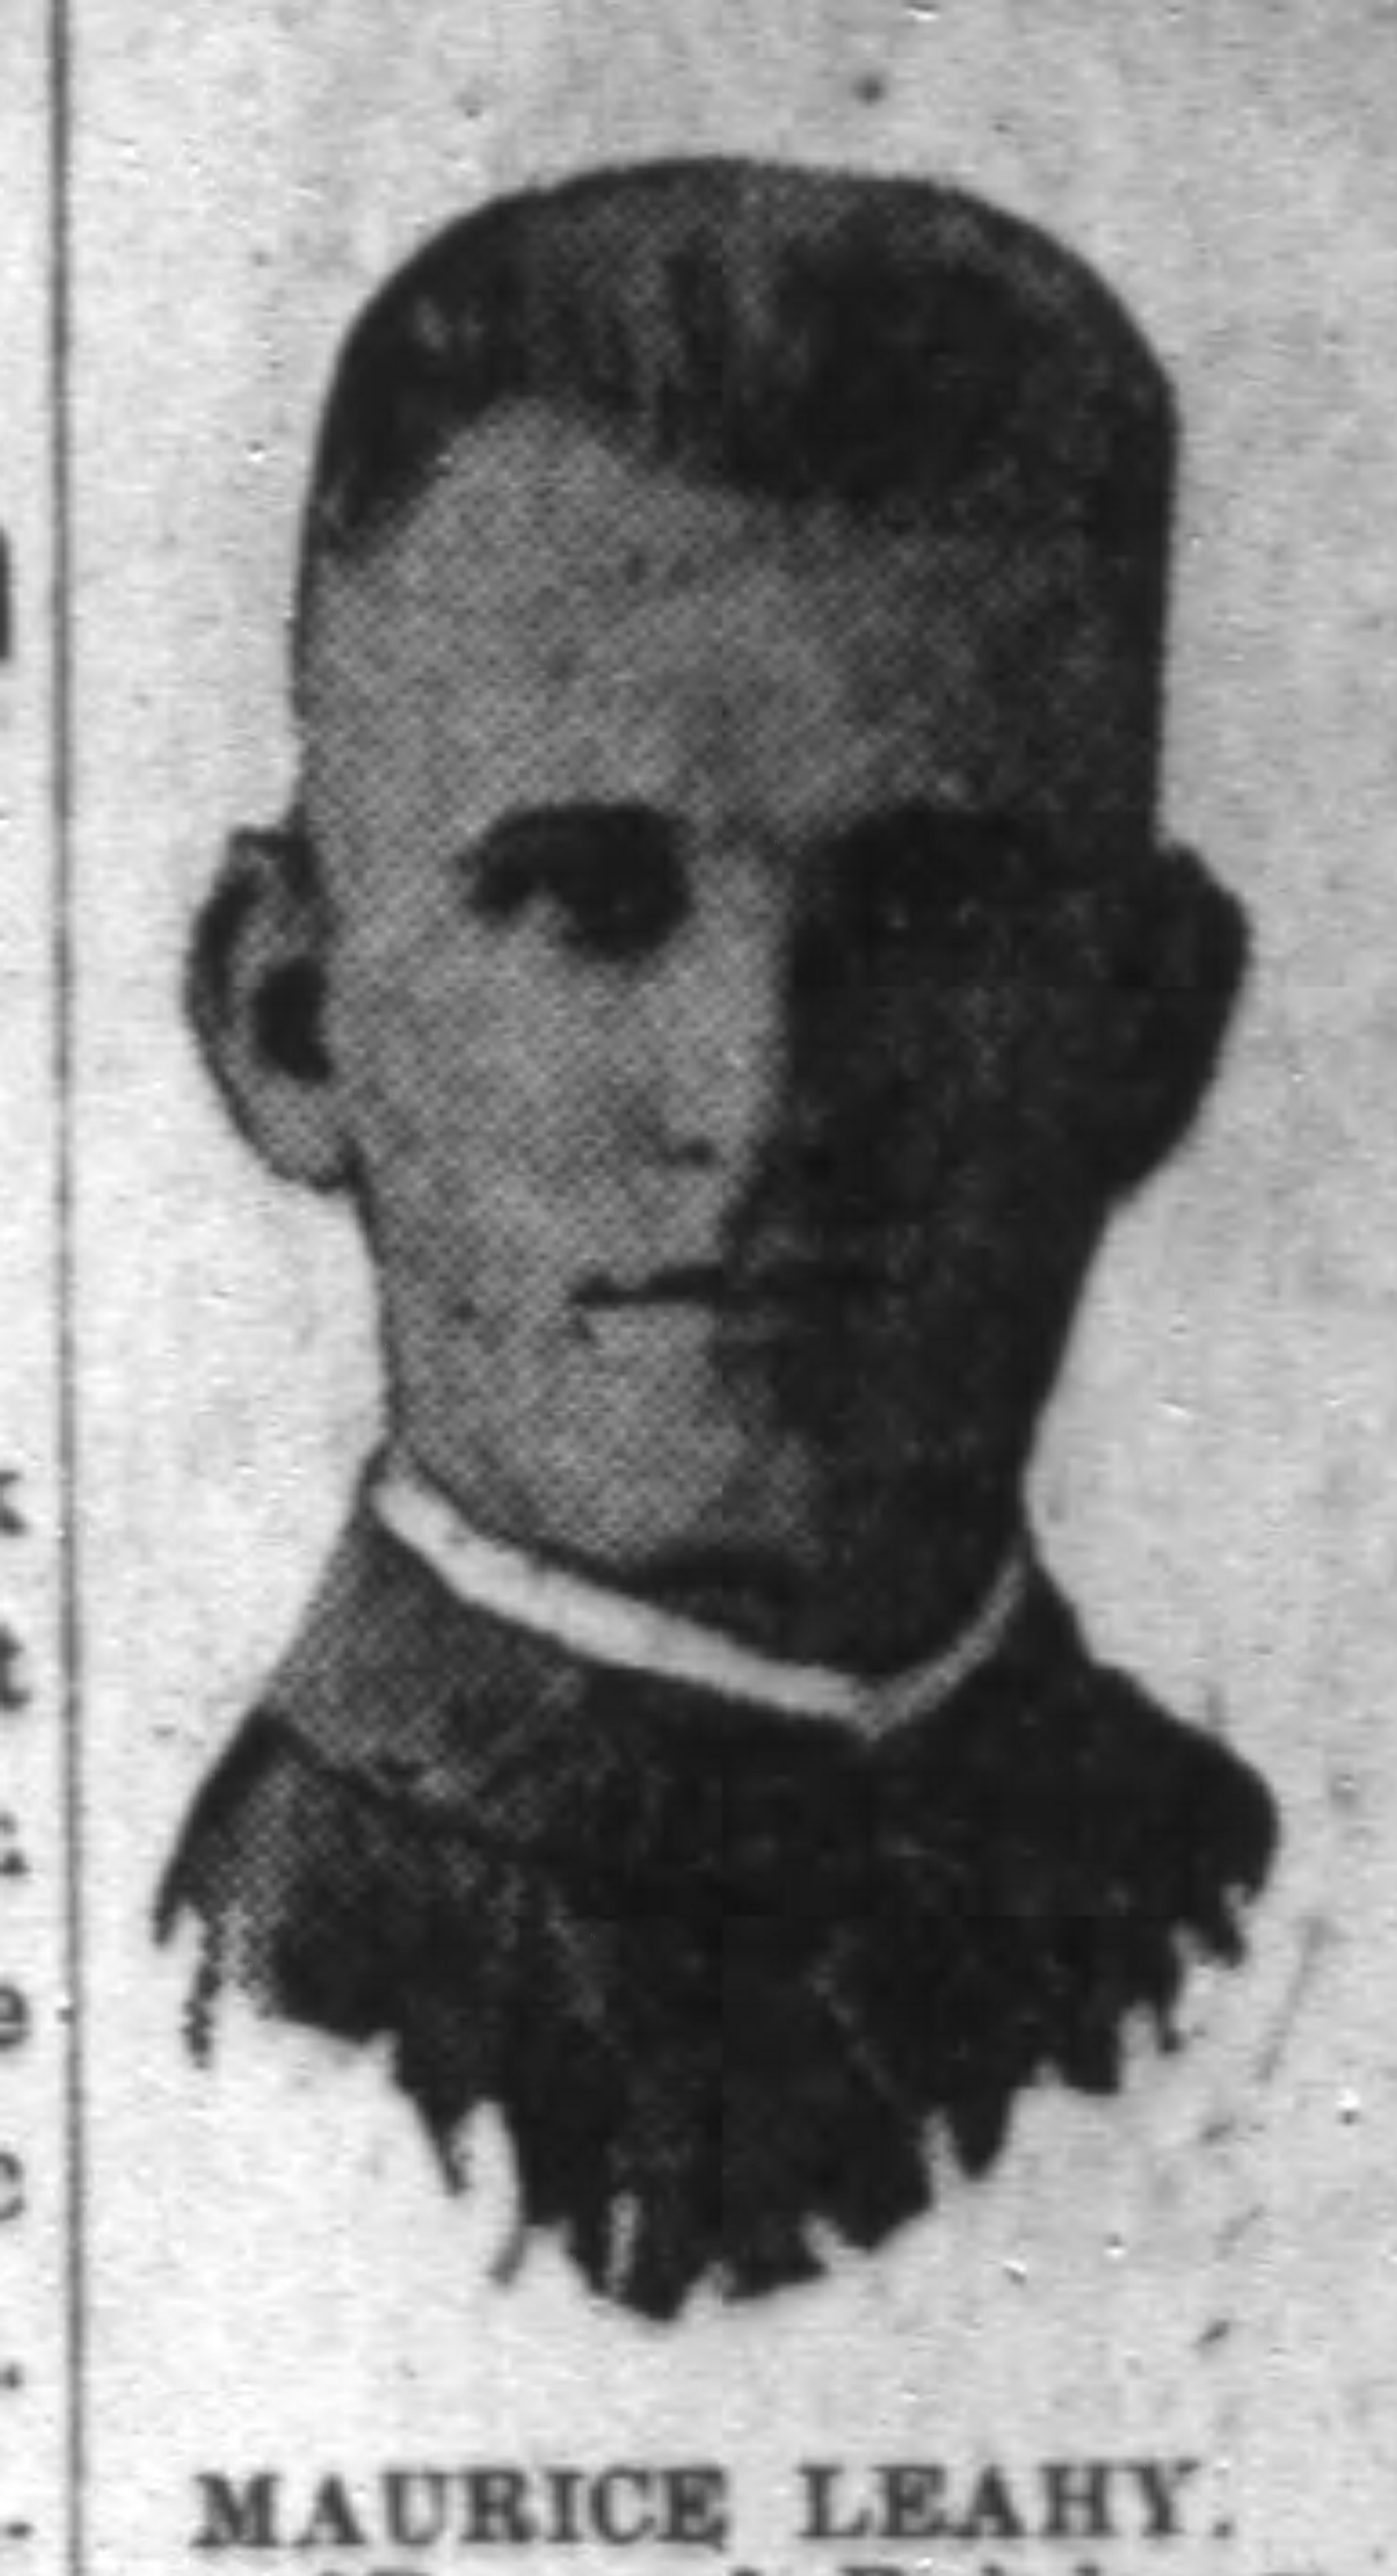 Police Officer Maurice Leahy, Jr. | Chicago and Northwestern Railroad Police Department, Railroad Police